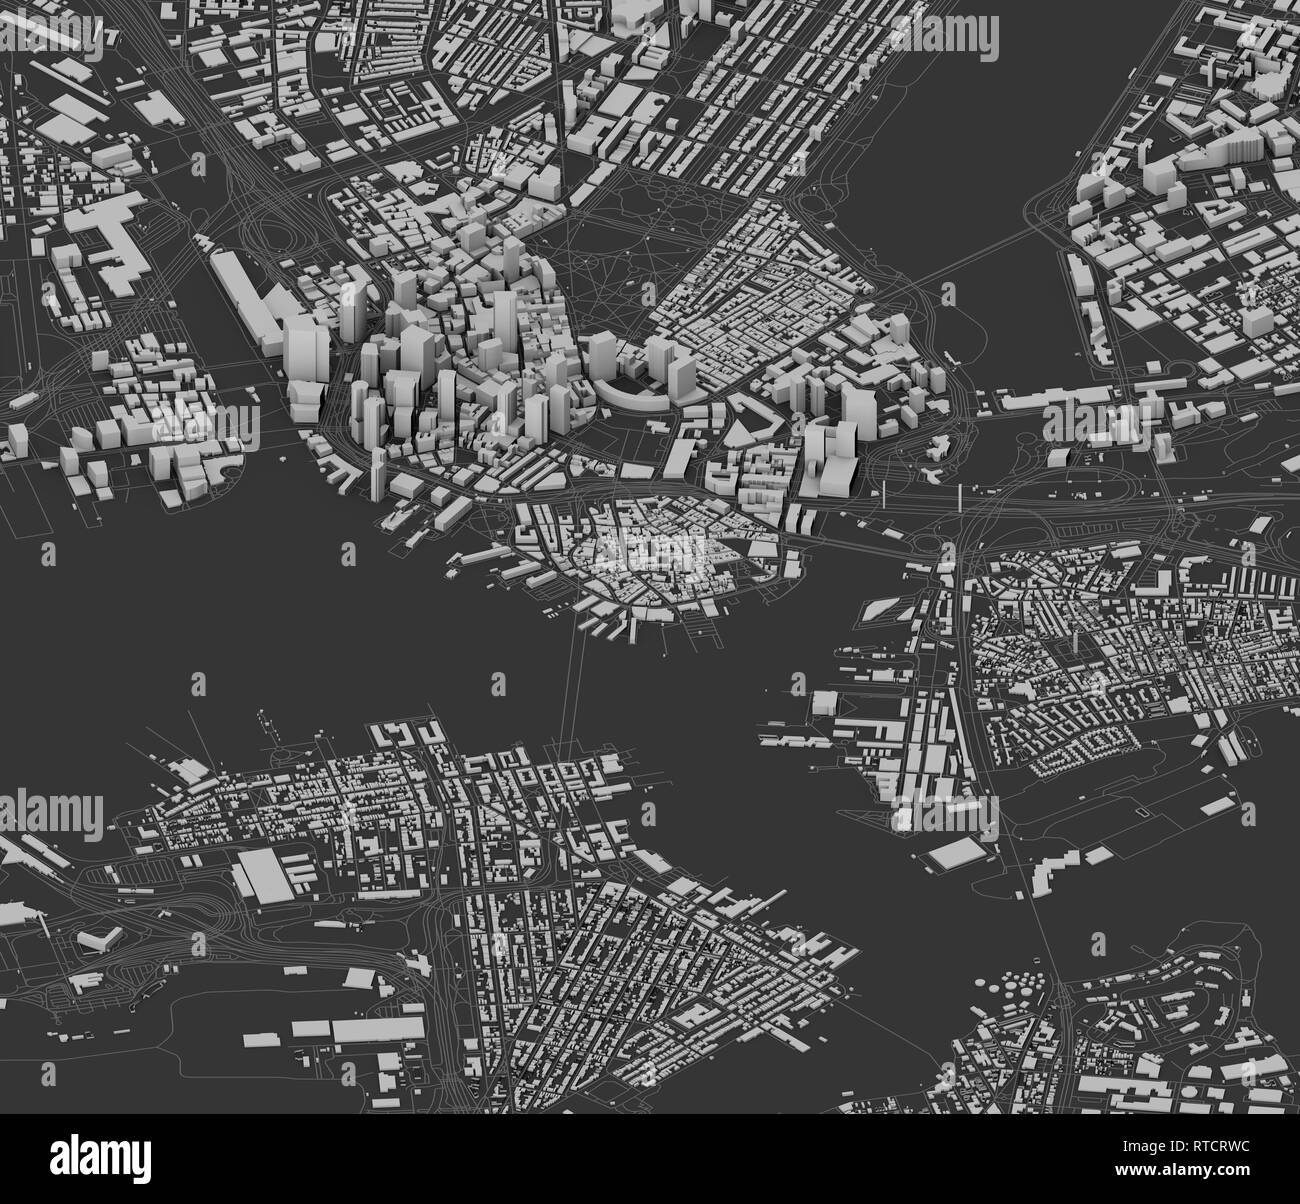 Satellite view of Boston, map of the city with house and ... on space maps, radar maps, live maps, lake maps, types of maps, aerial maps, street maps, military maps, temperature maps, digital maps, pomorskie poland maps, msn maps, dvd maps, earth maps, topographical maps, internet maps, weather maps, gis maps, sites atlas thematic maps, topographic maps,